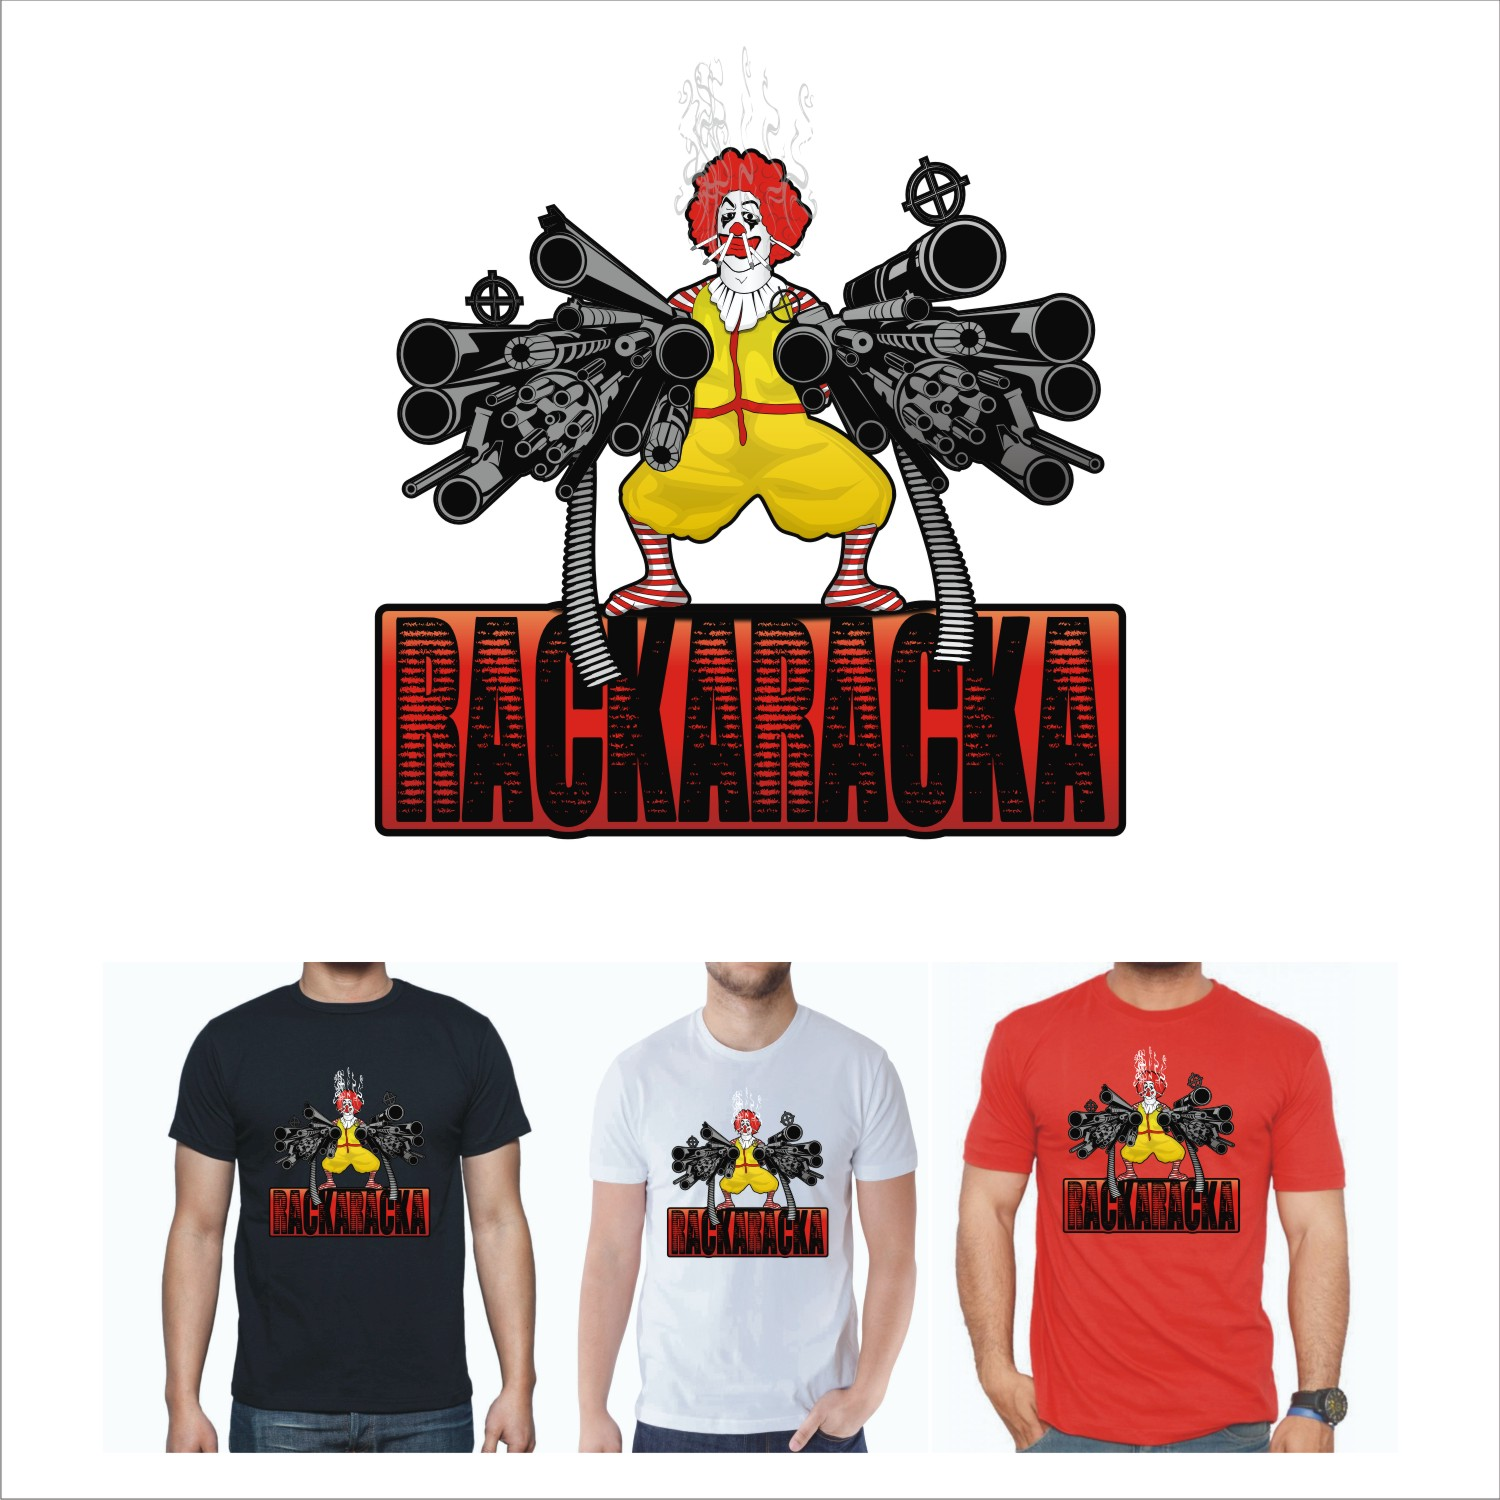 T shirt design youtube - T Shirt Design Design 13421154 Submitted To Rackaracka Large Youtube Channel